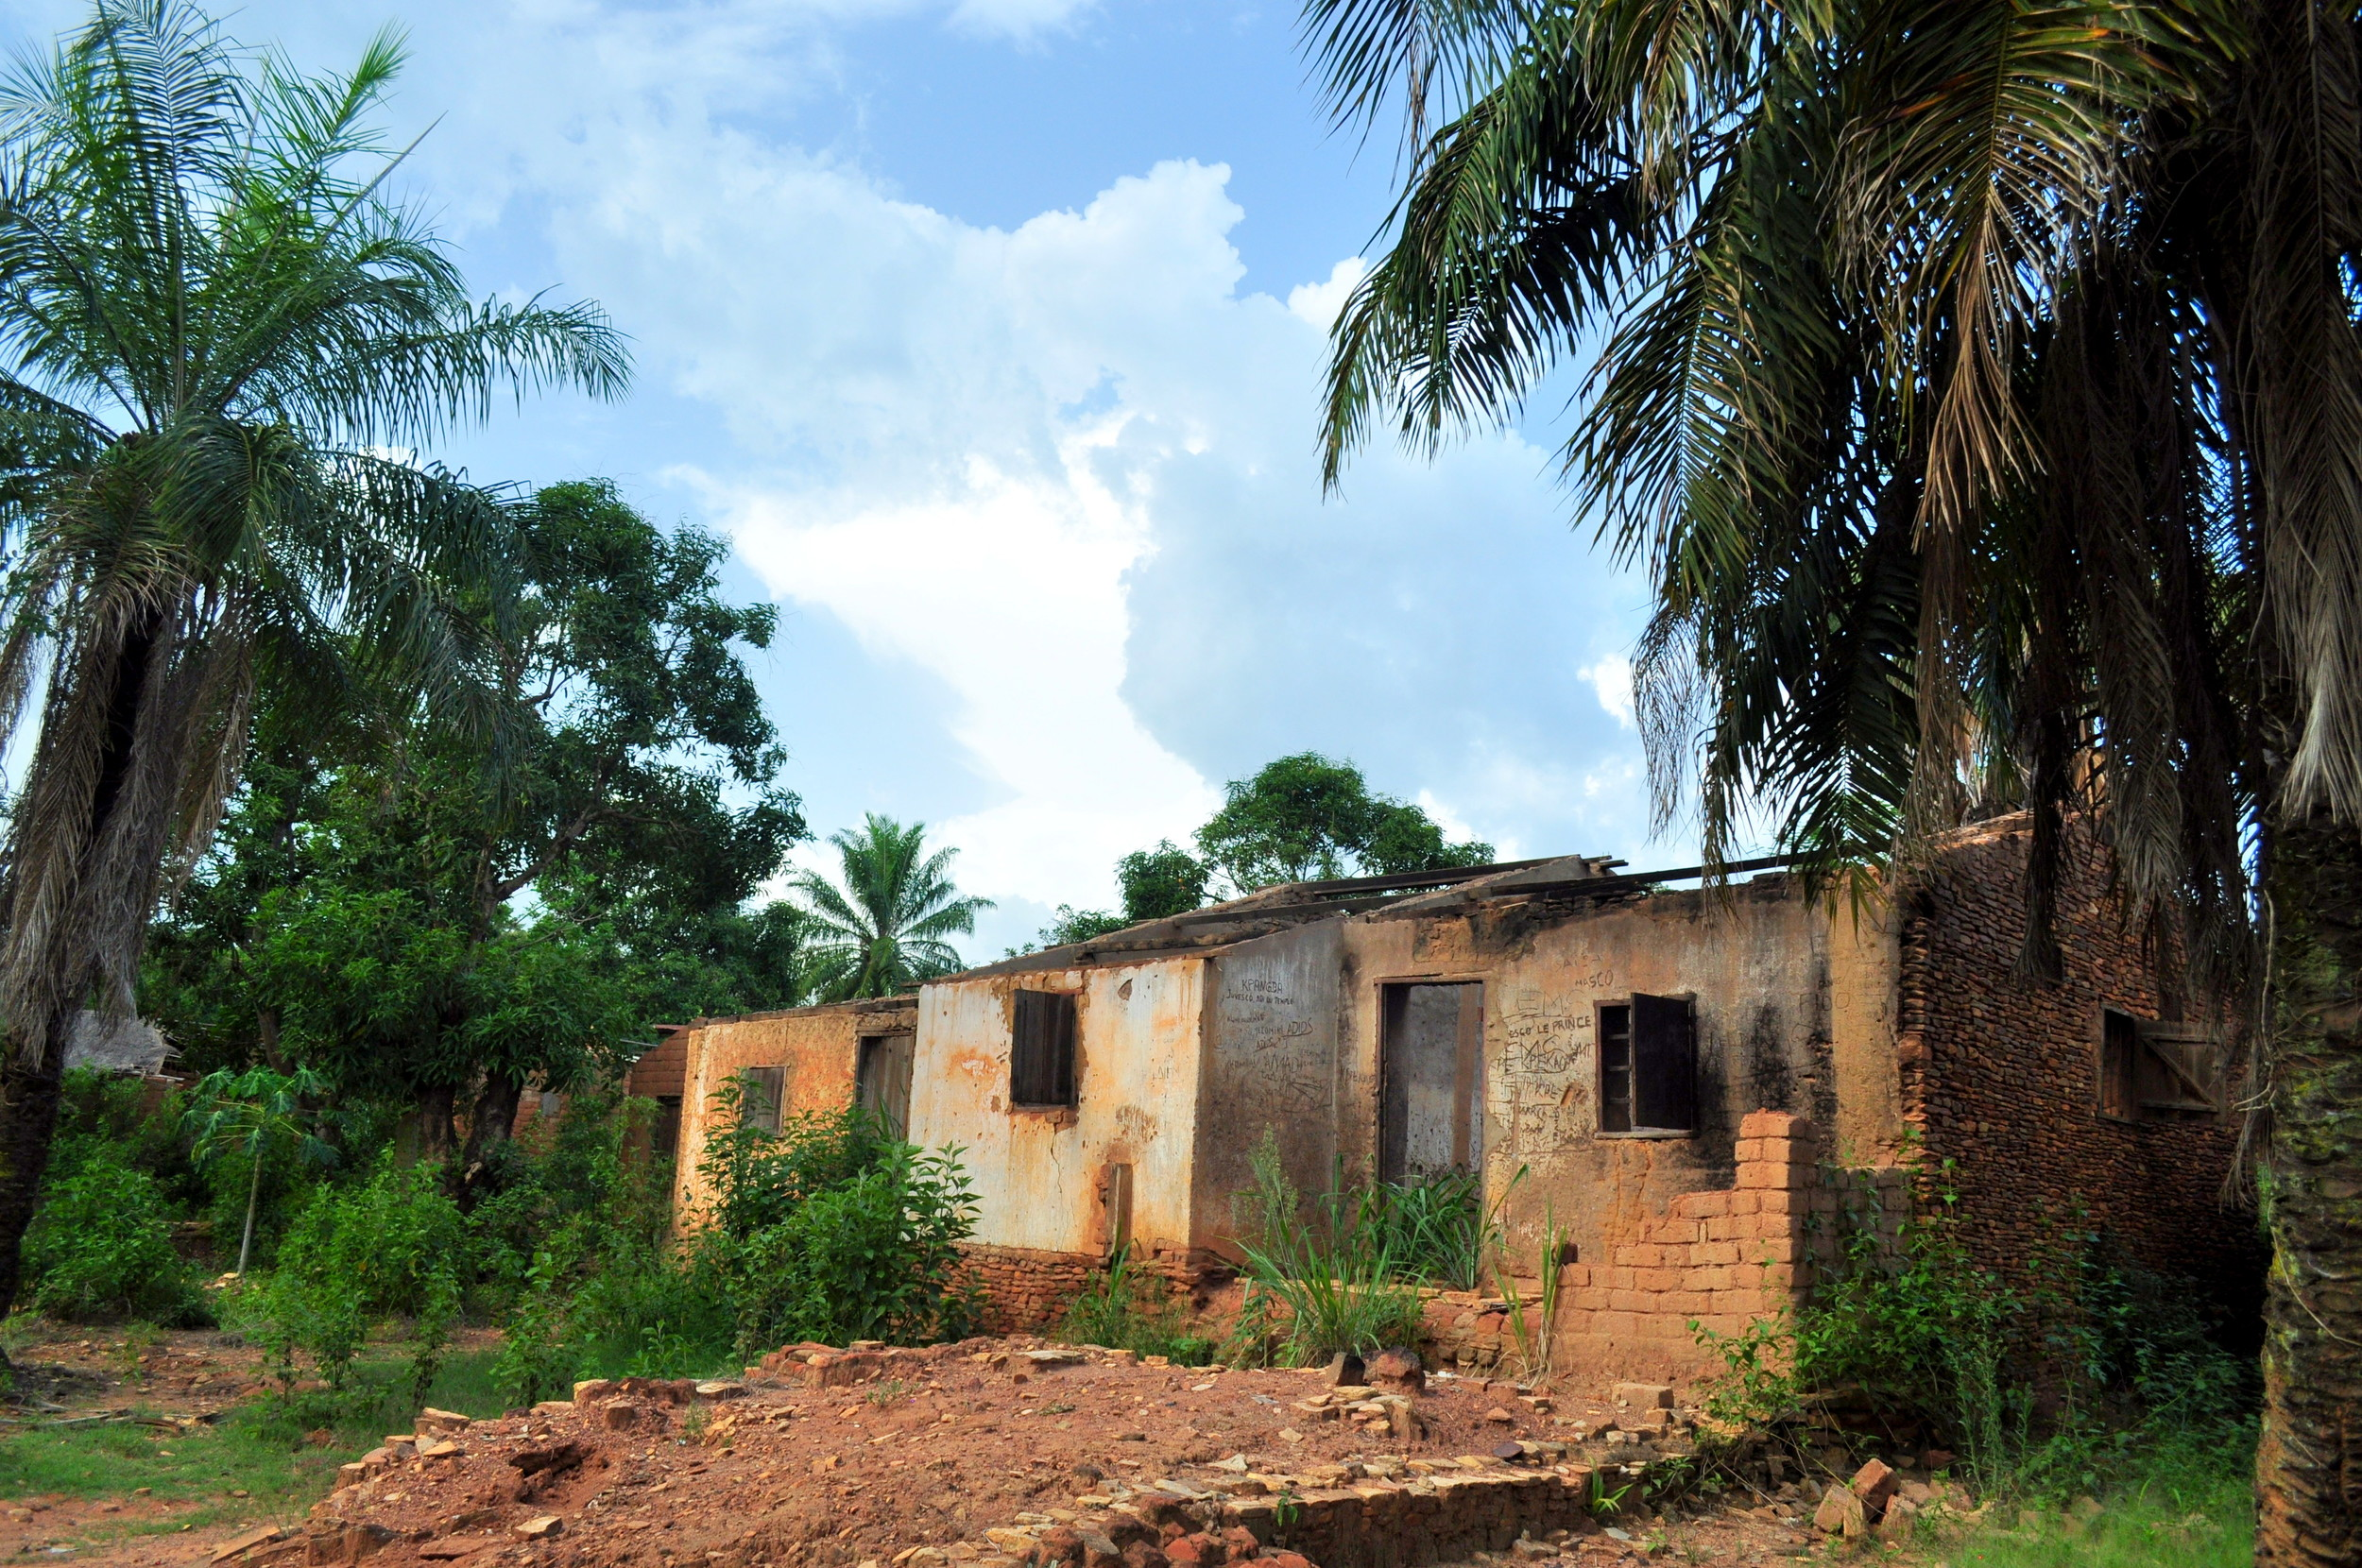 Many neighborhoods in Bambari are deserted after armed groups attacked and burned down homes.